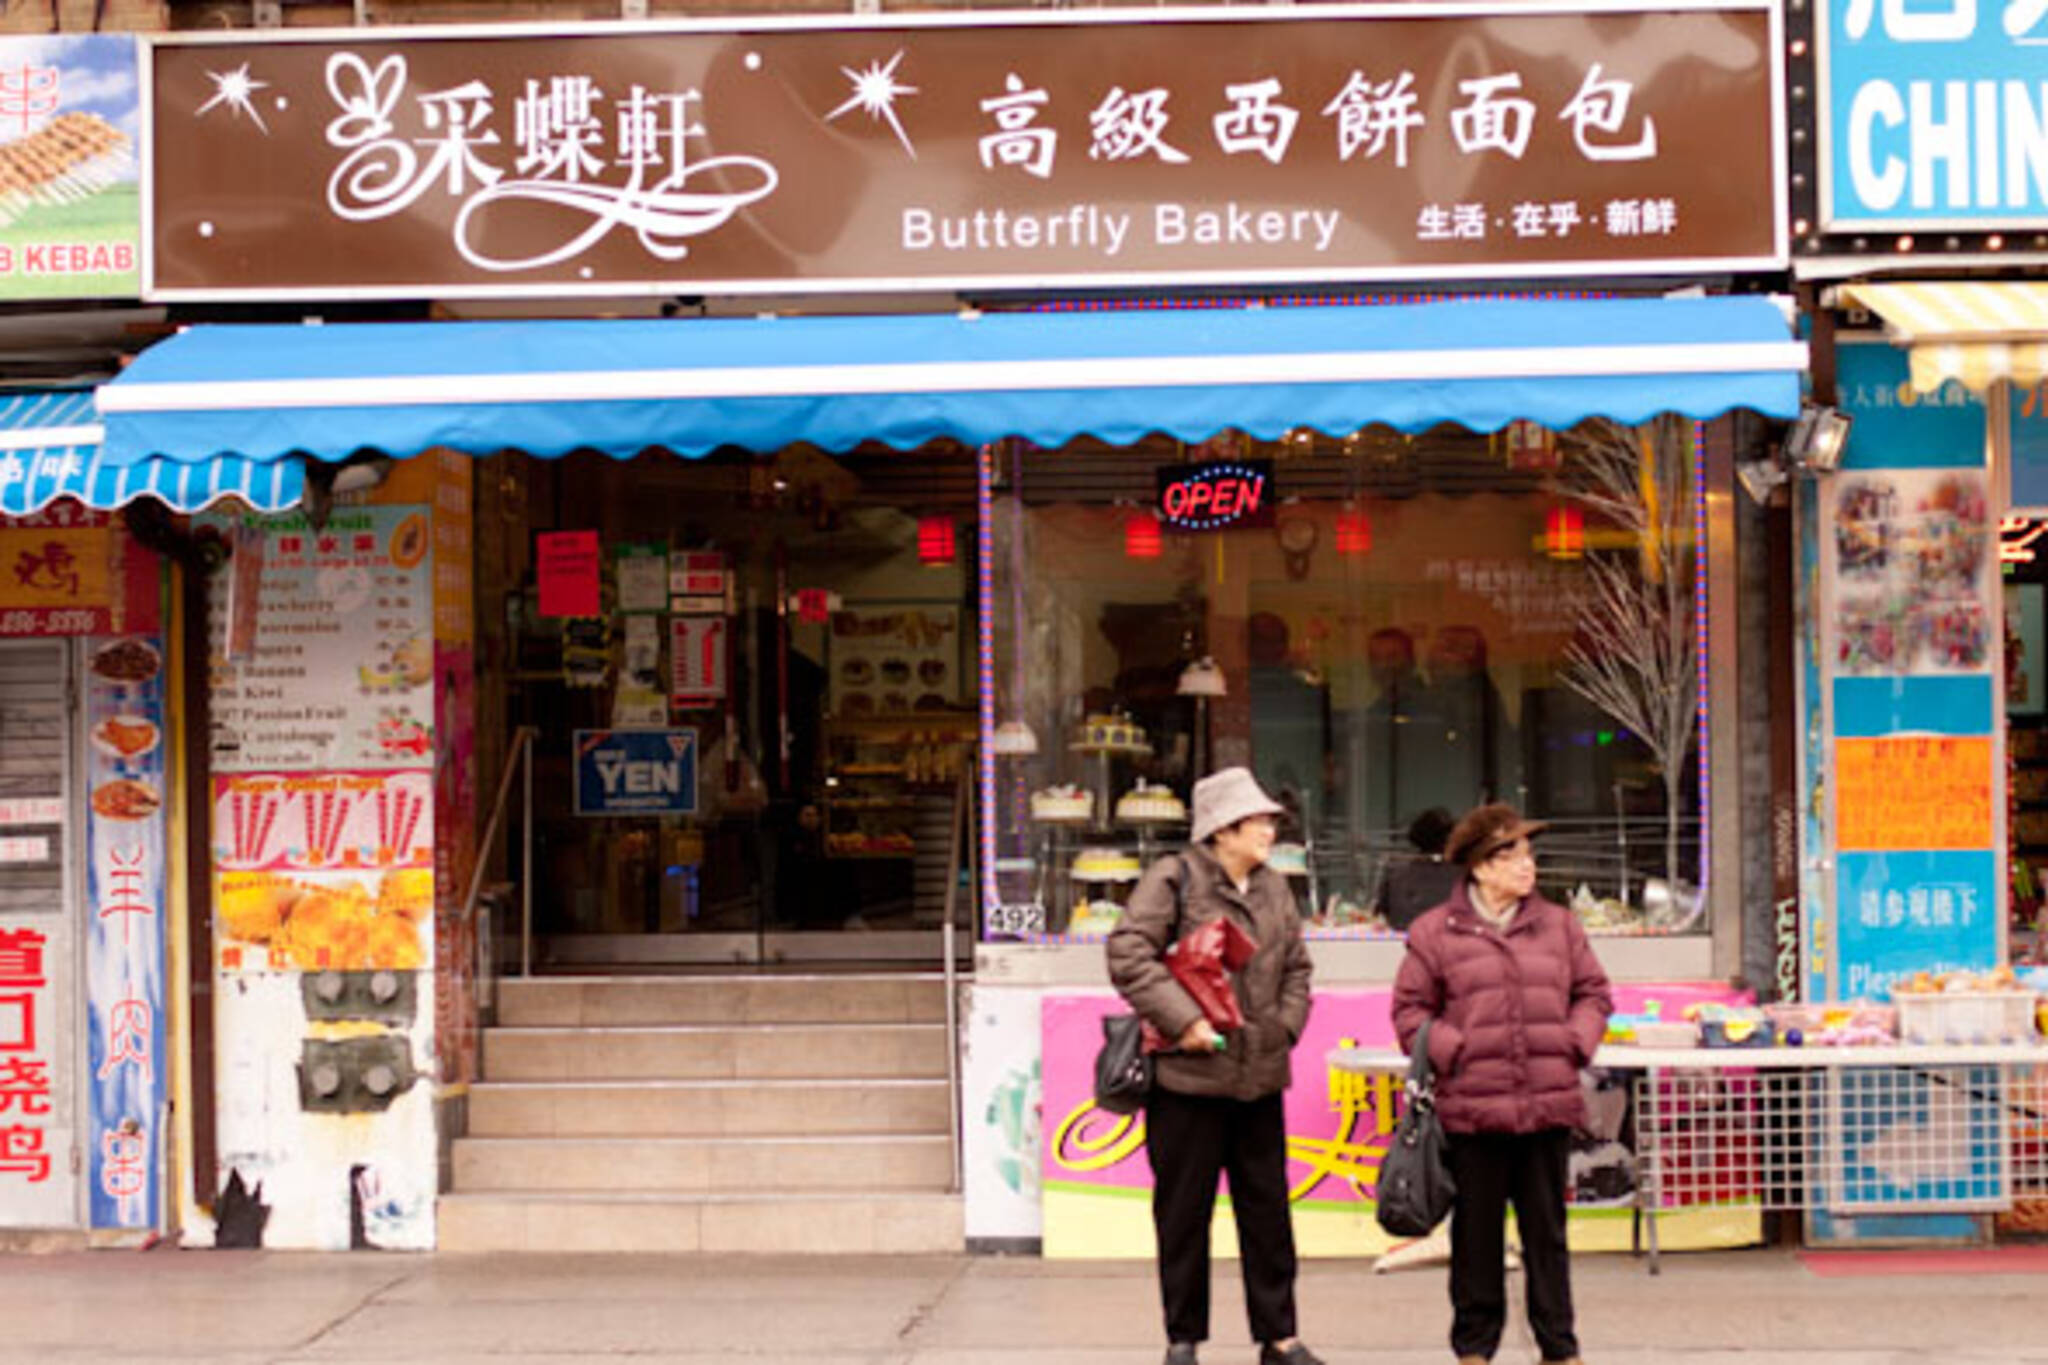 Butterfly Bakery